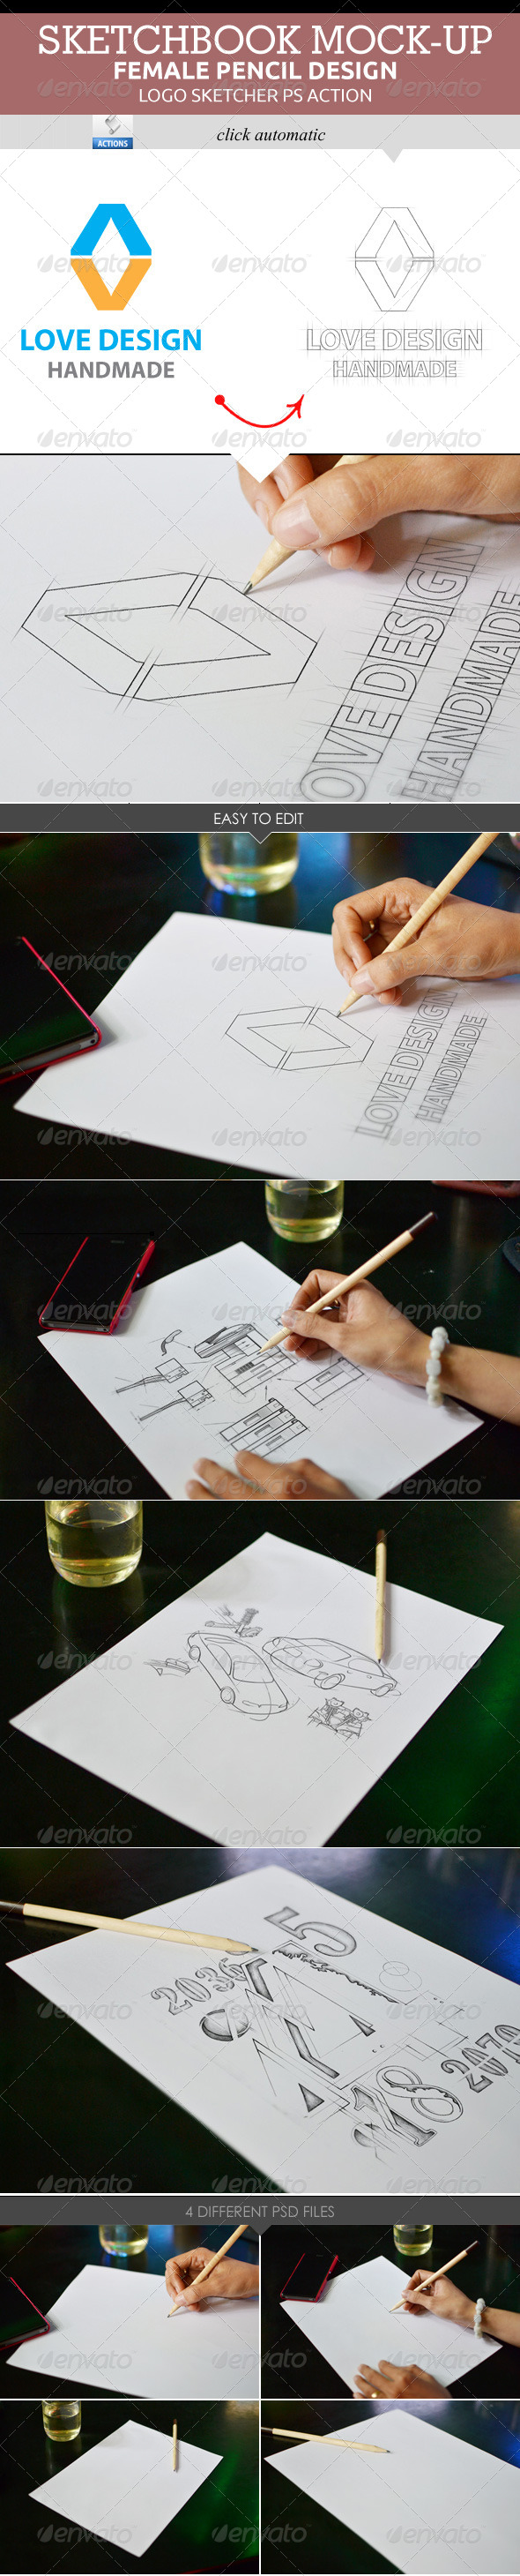 GraphicRiver Sketchbook Mock-Up 8294592